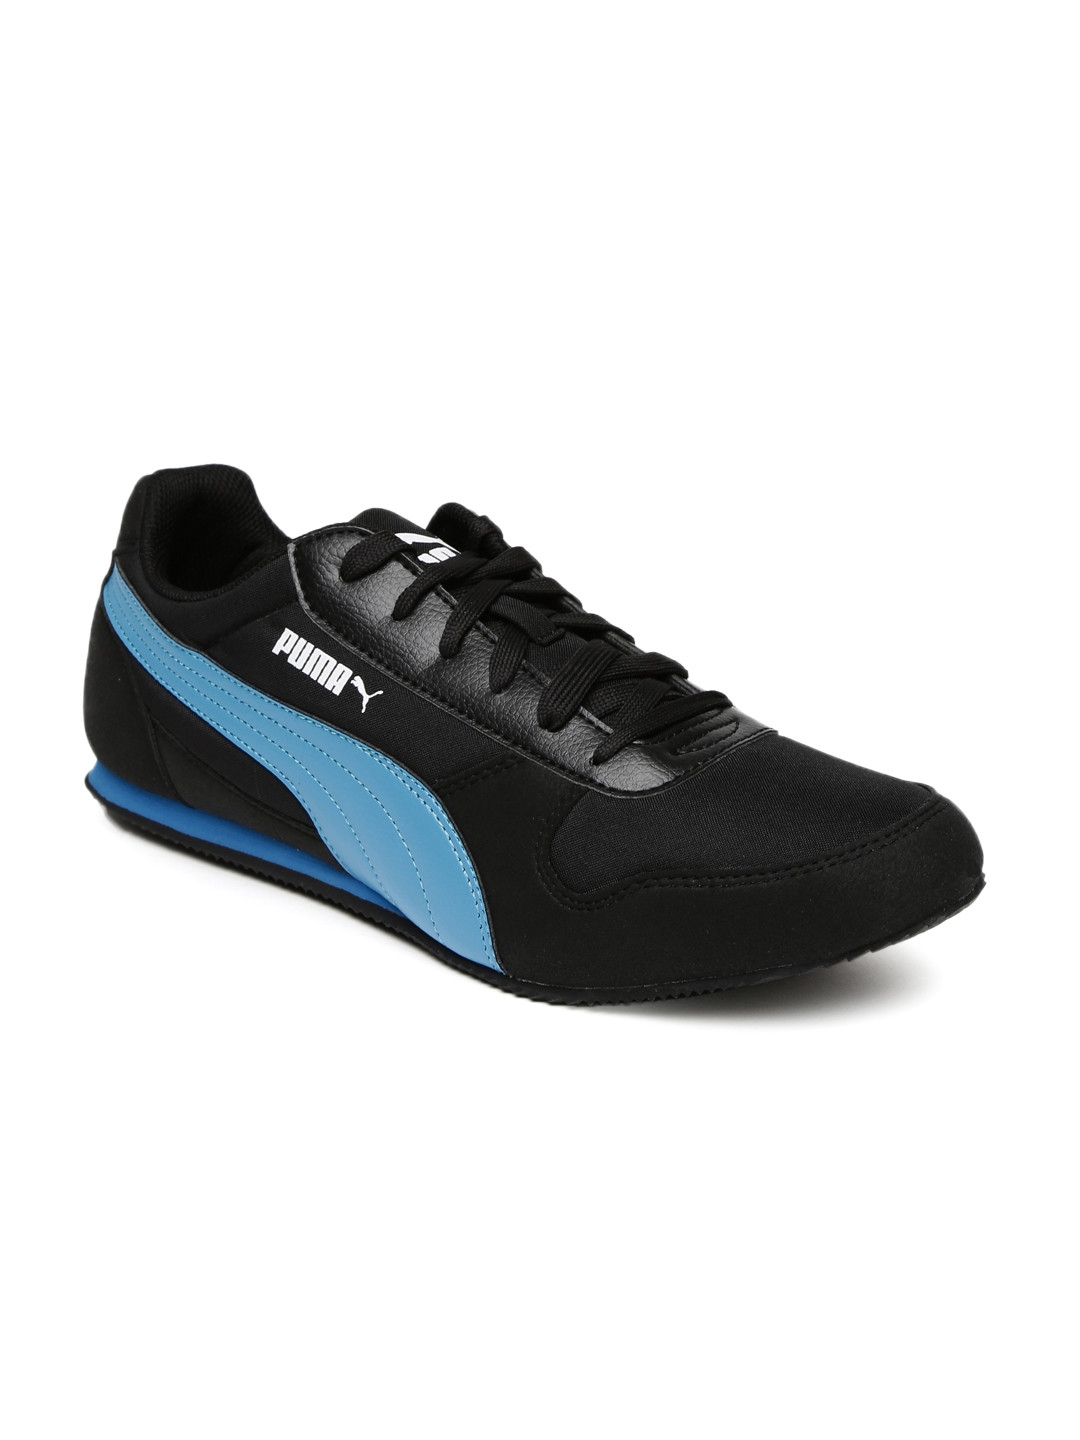 967acf21a33 Buy Puma Men Black   Blue Superior DP Sneakers - Casual Shoes for ...